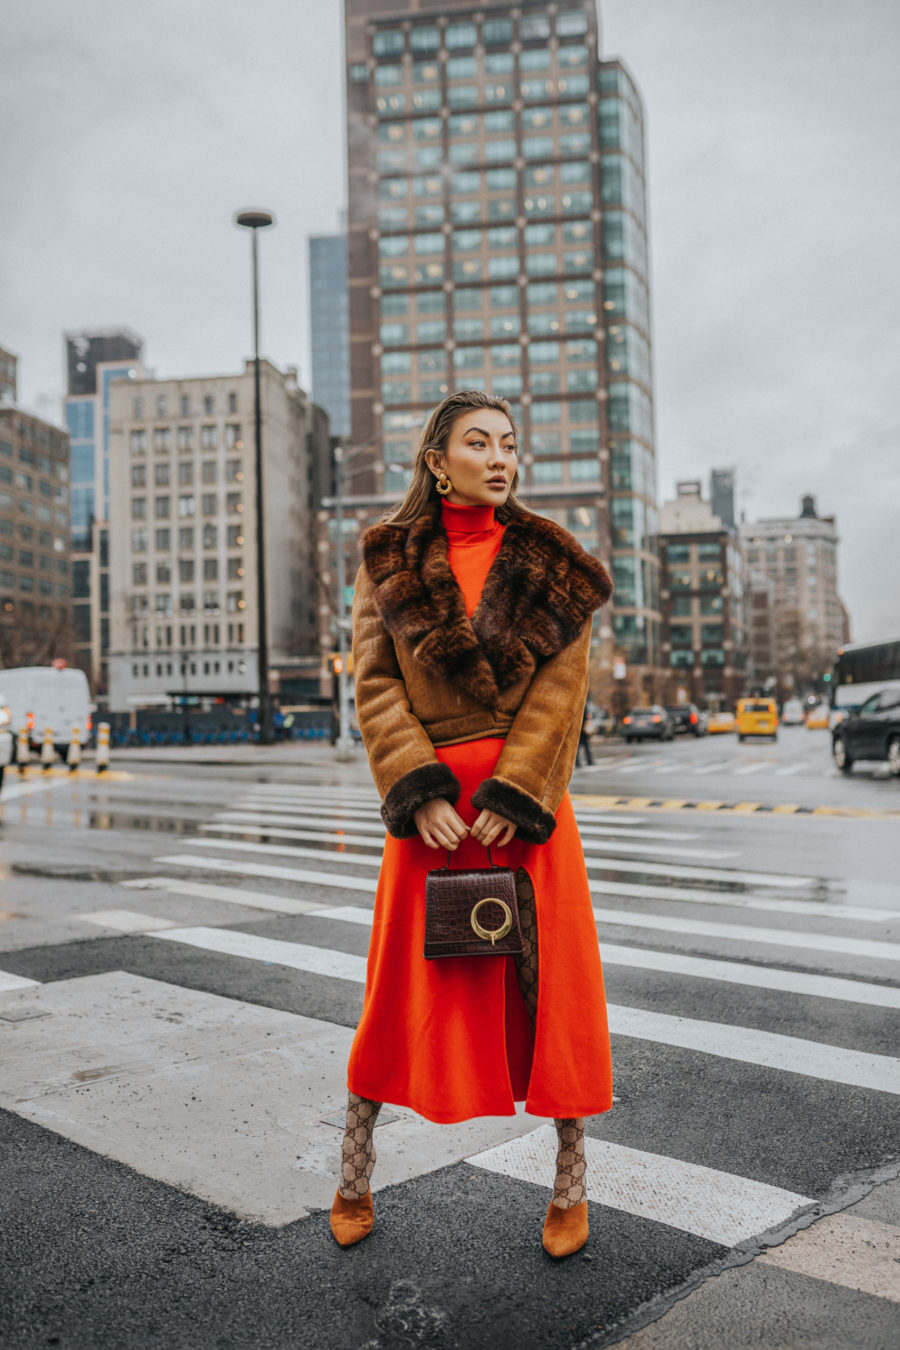 fashion blogger jessica wang wearing faux shearling coats at fashion week // Jessica Wang - Notjessfashion.com